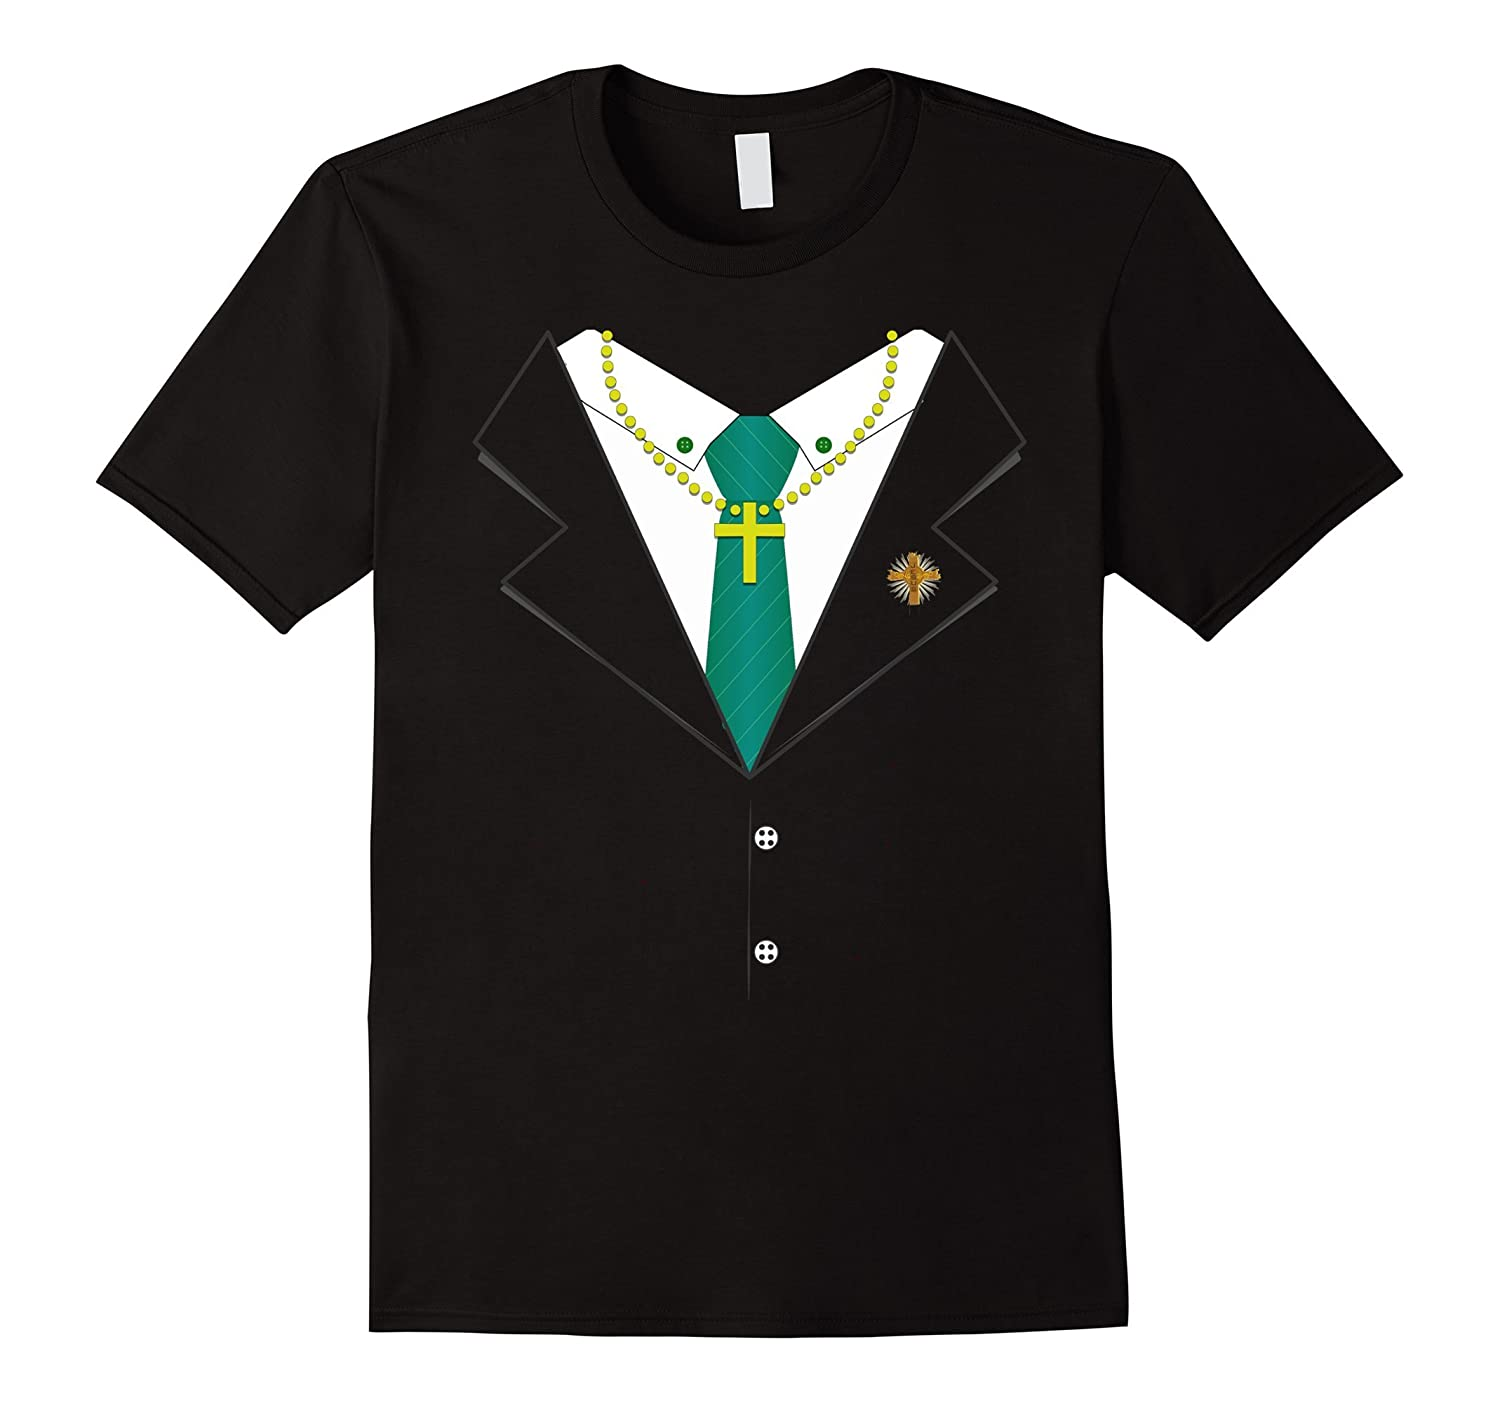 Preacher Suit Tie Halloween Costume T-Shirt - Priest